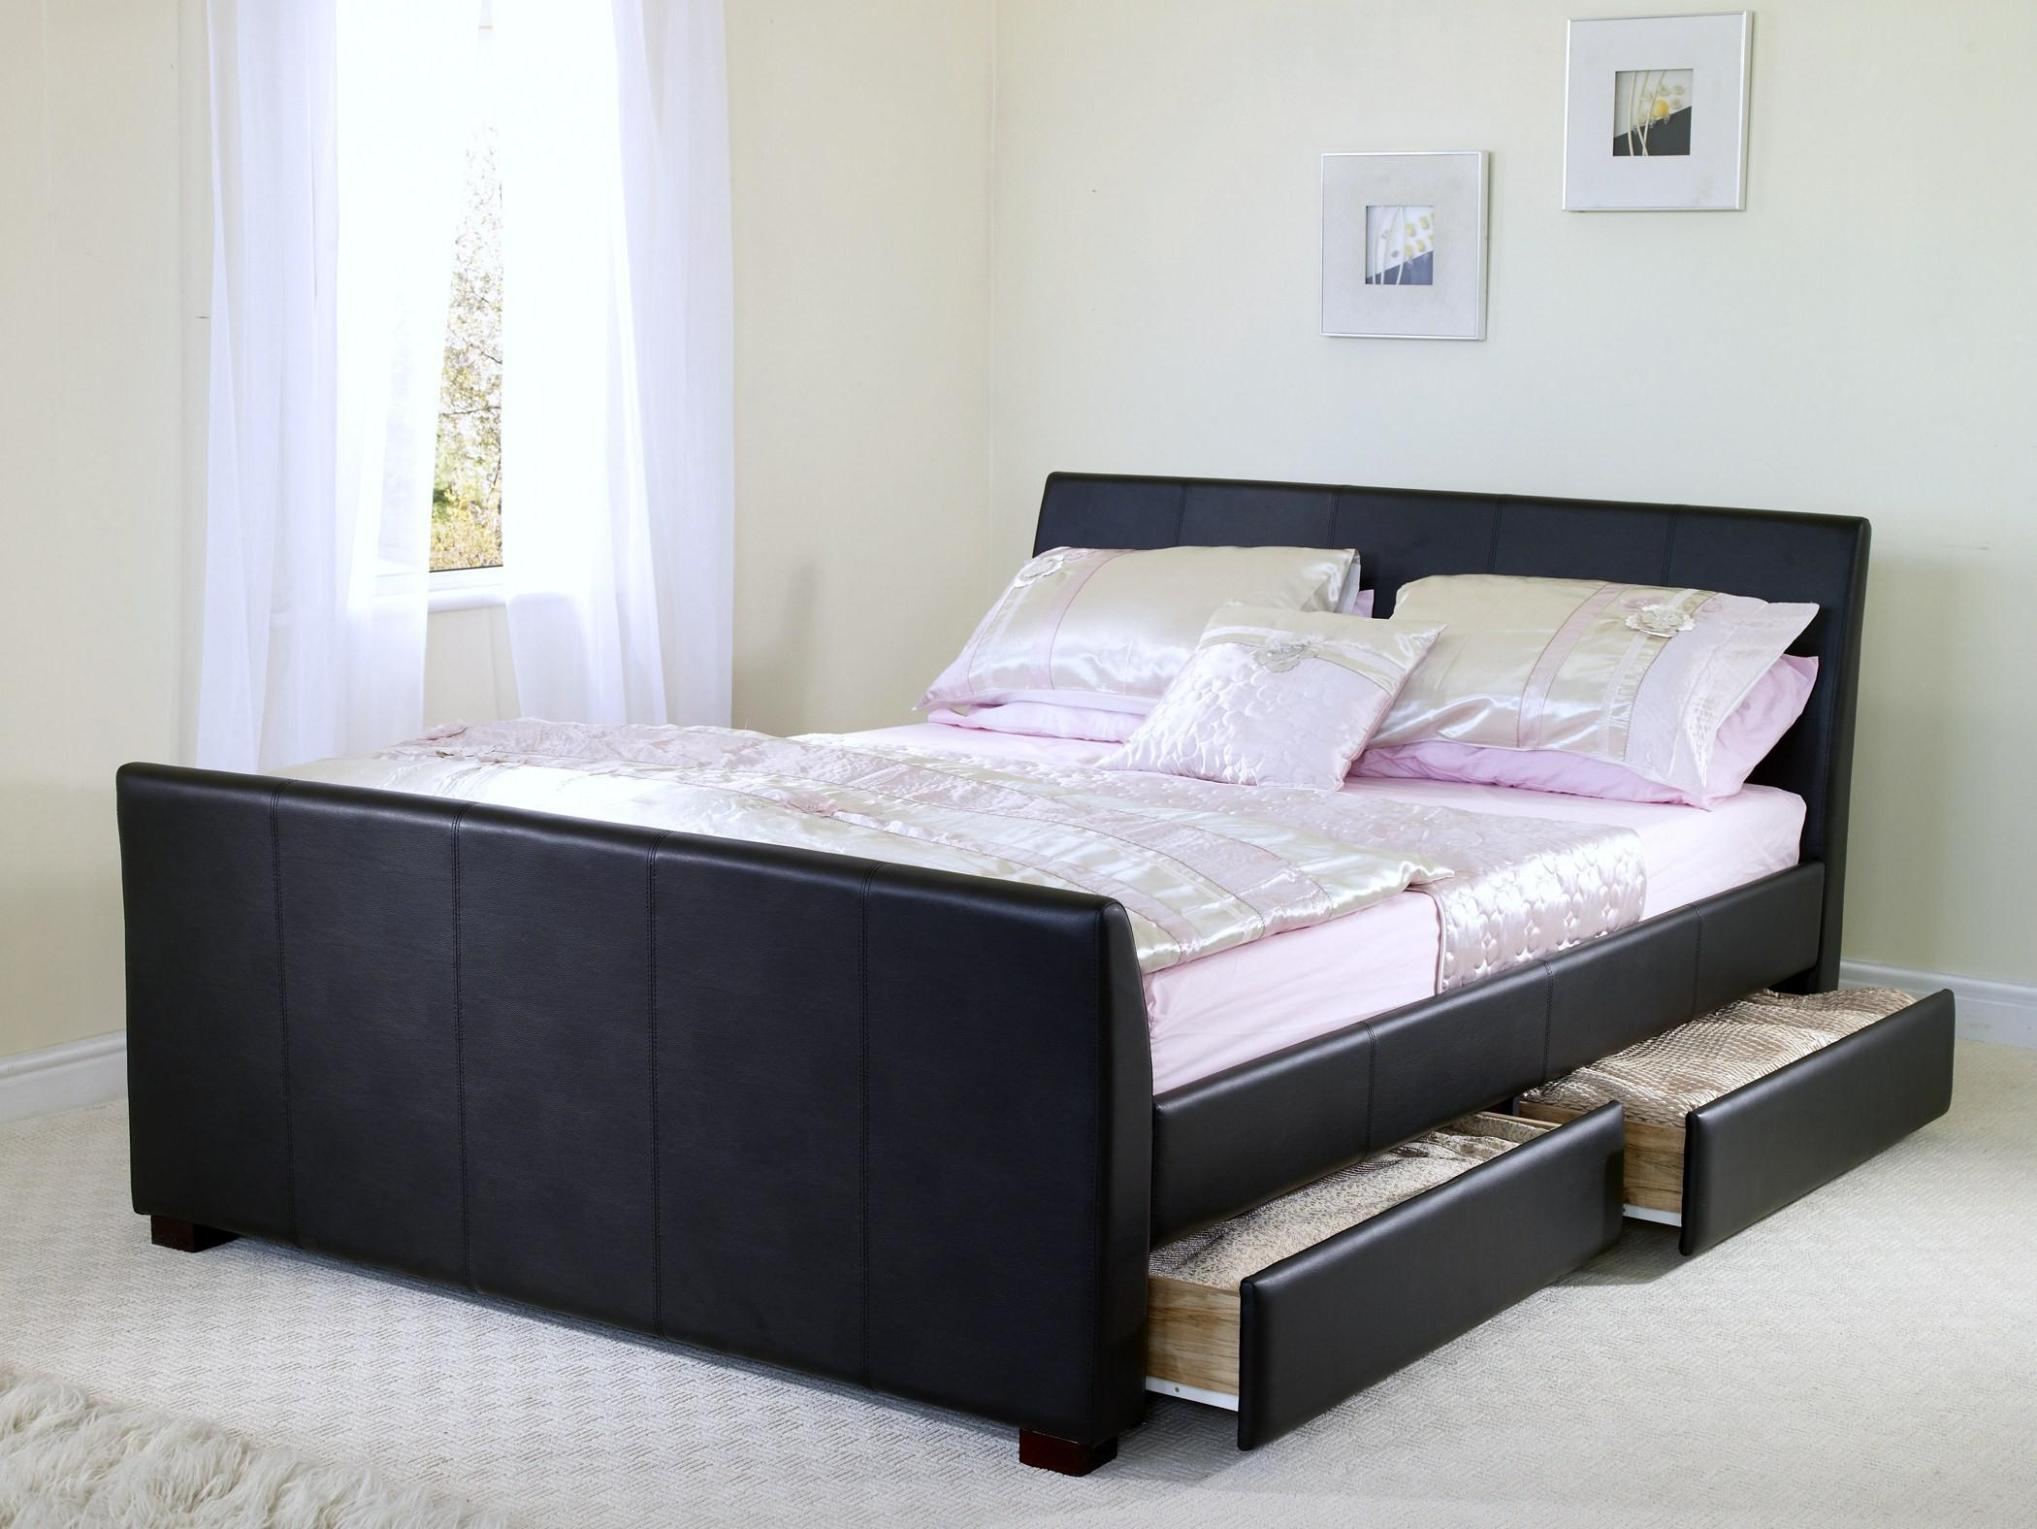 Image of: Queen Size Bed Frame With Drawers